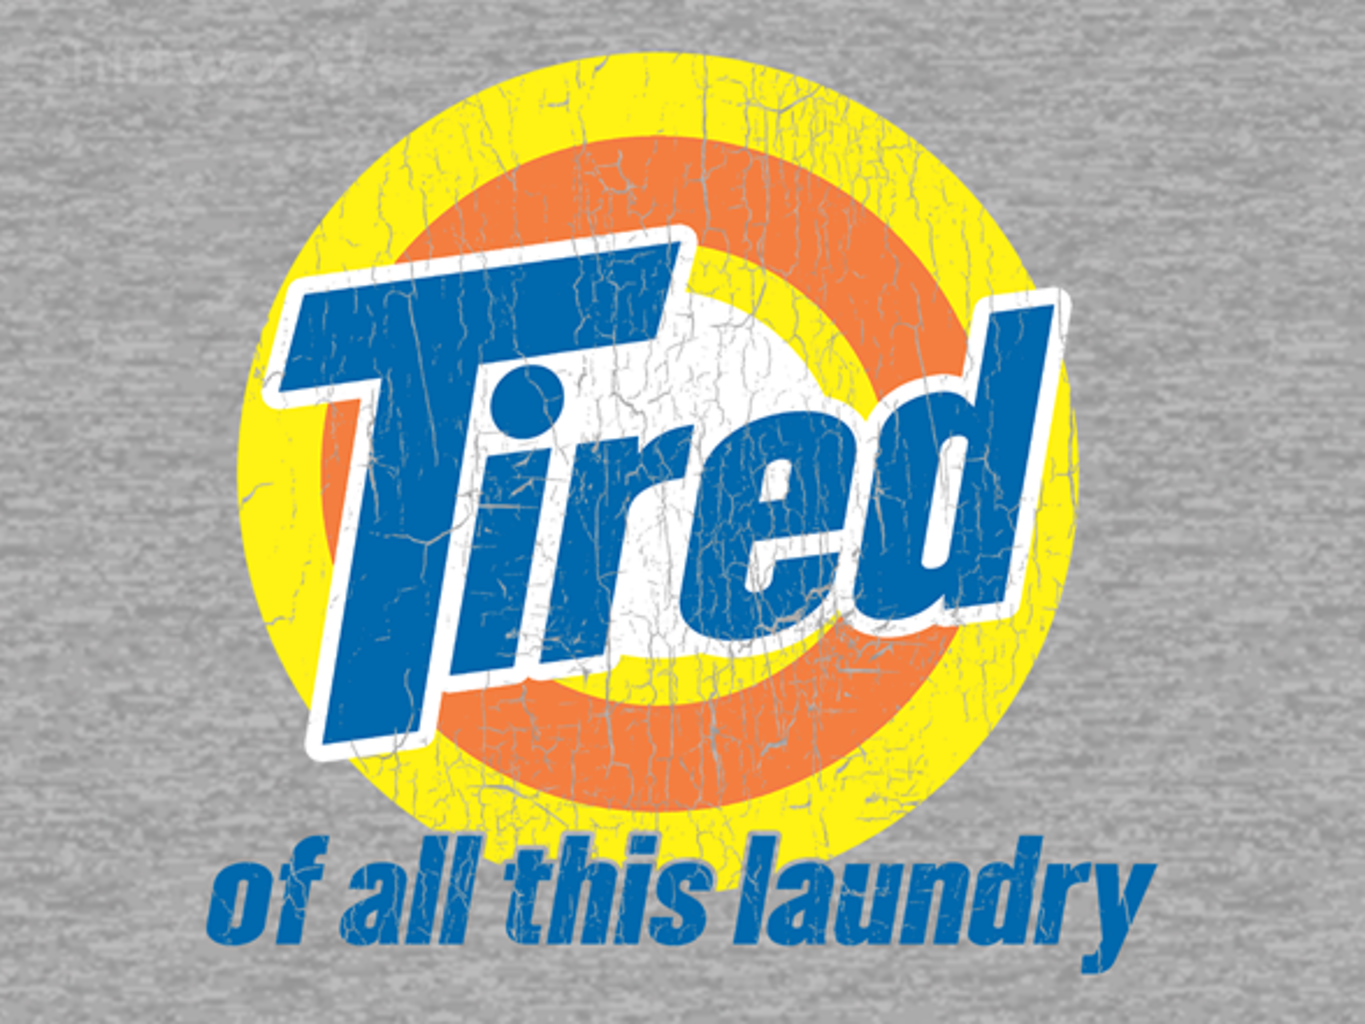 Woot!: Tired